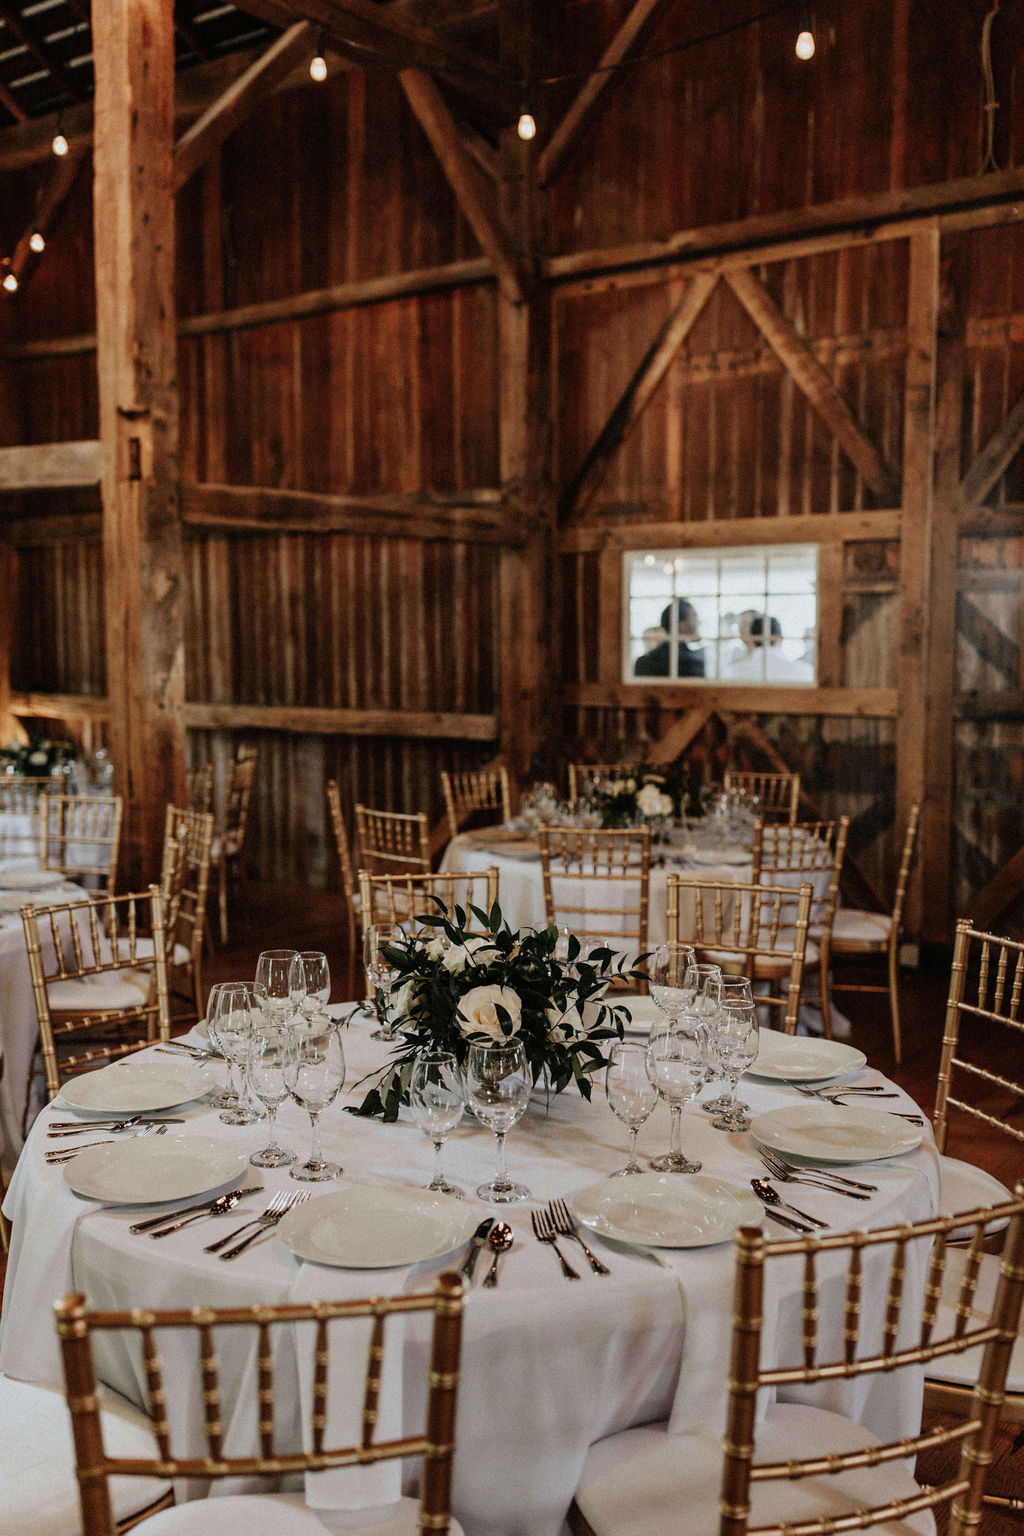 Tables set for a Hidden Vineyard Wedding Barn wedding reception.